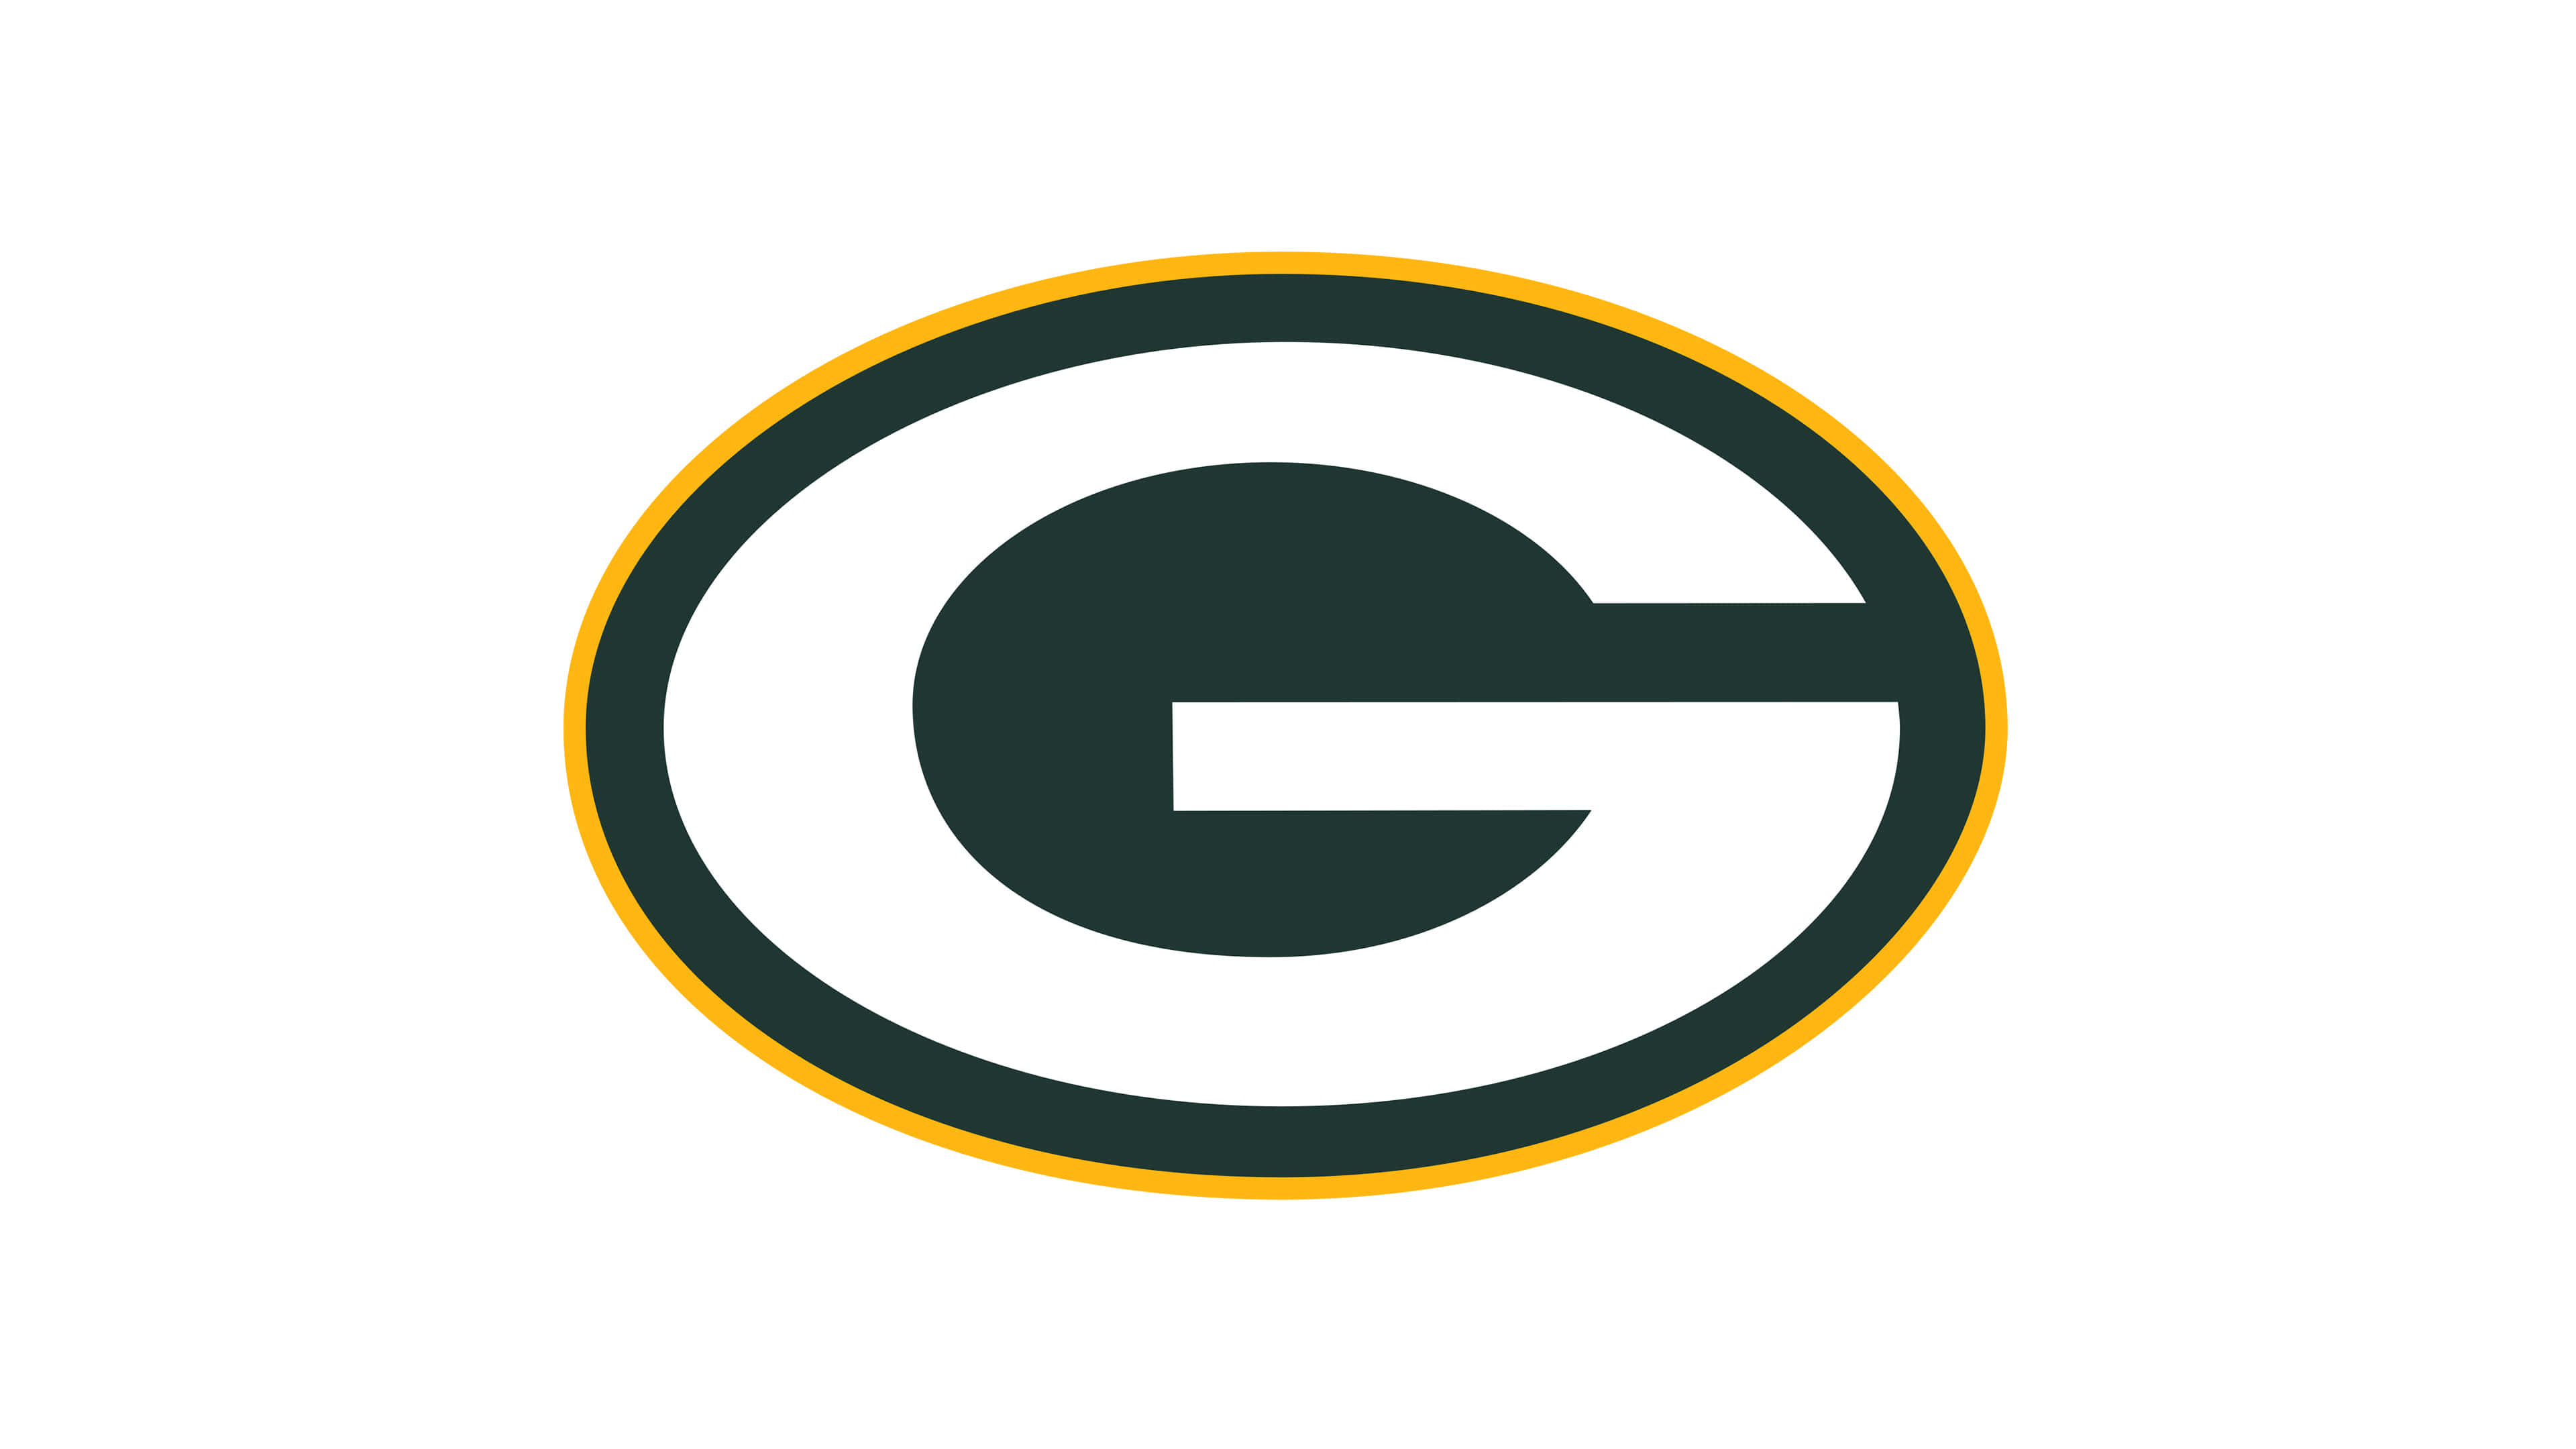 Green Bay Packers Nfl Logo Uhd 4k Wallpaper Pixelz